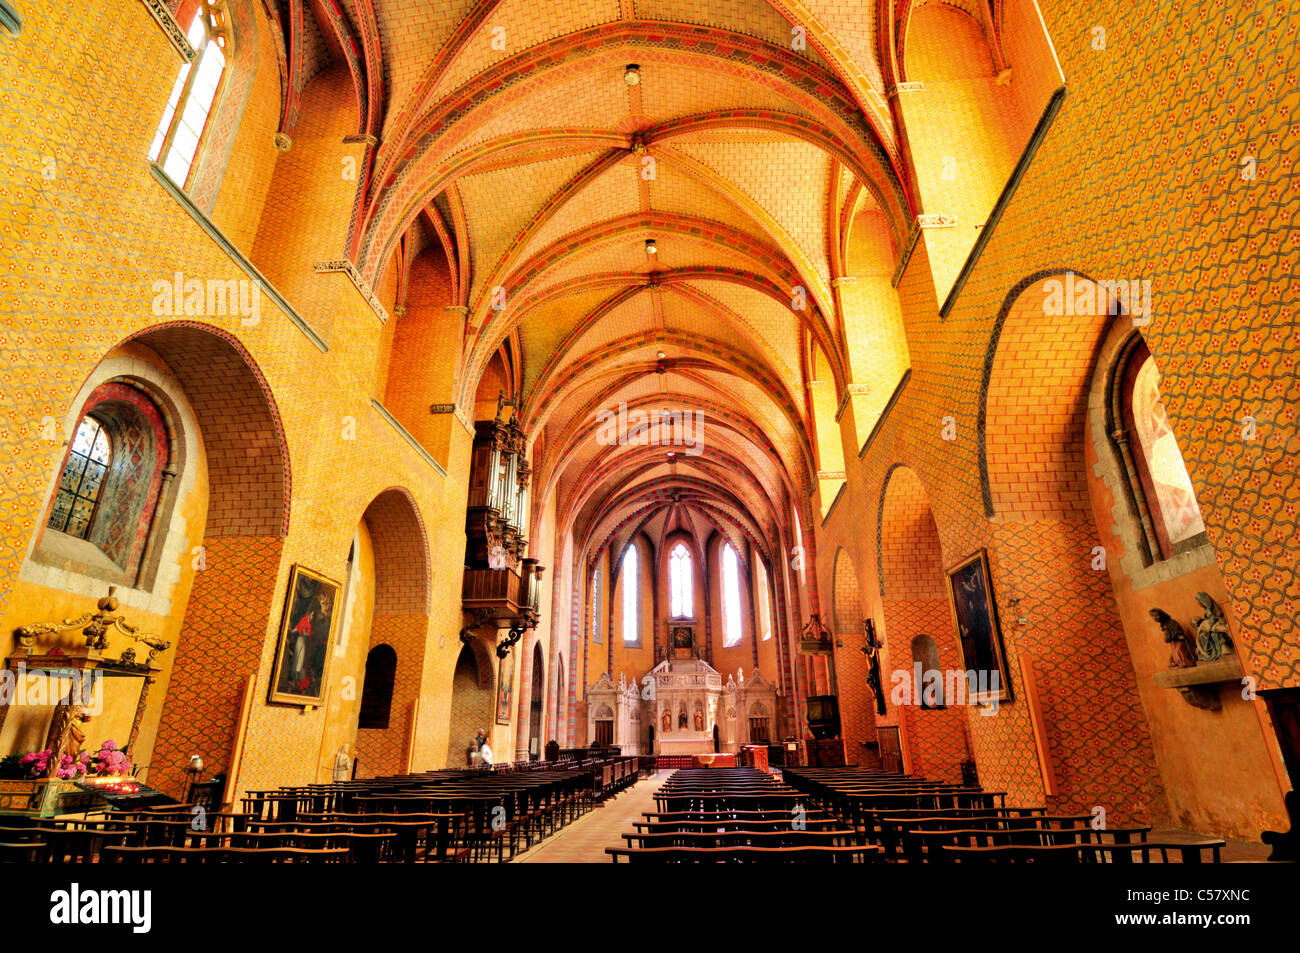 France, Saint James Way : Eglise Saint-Pierre de Moissac Photo Stock